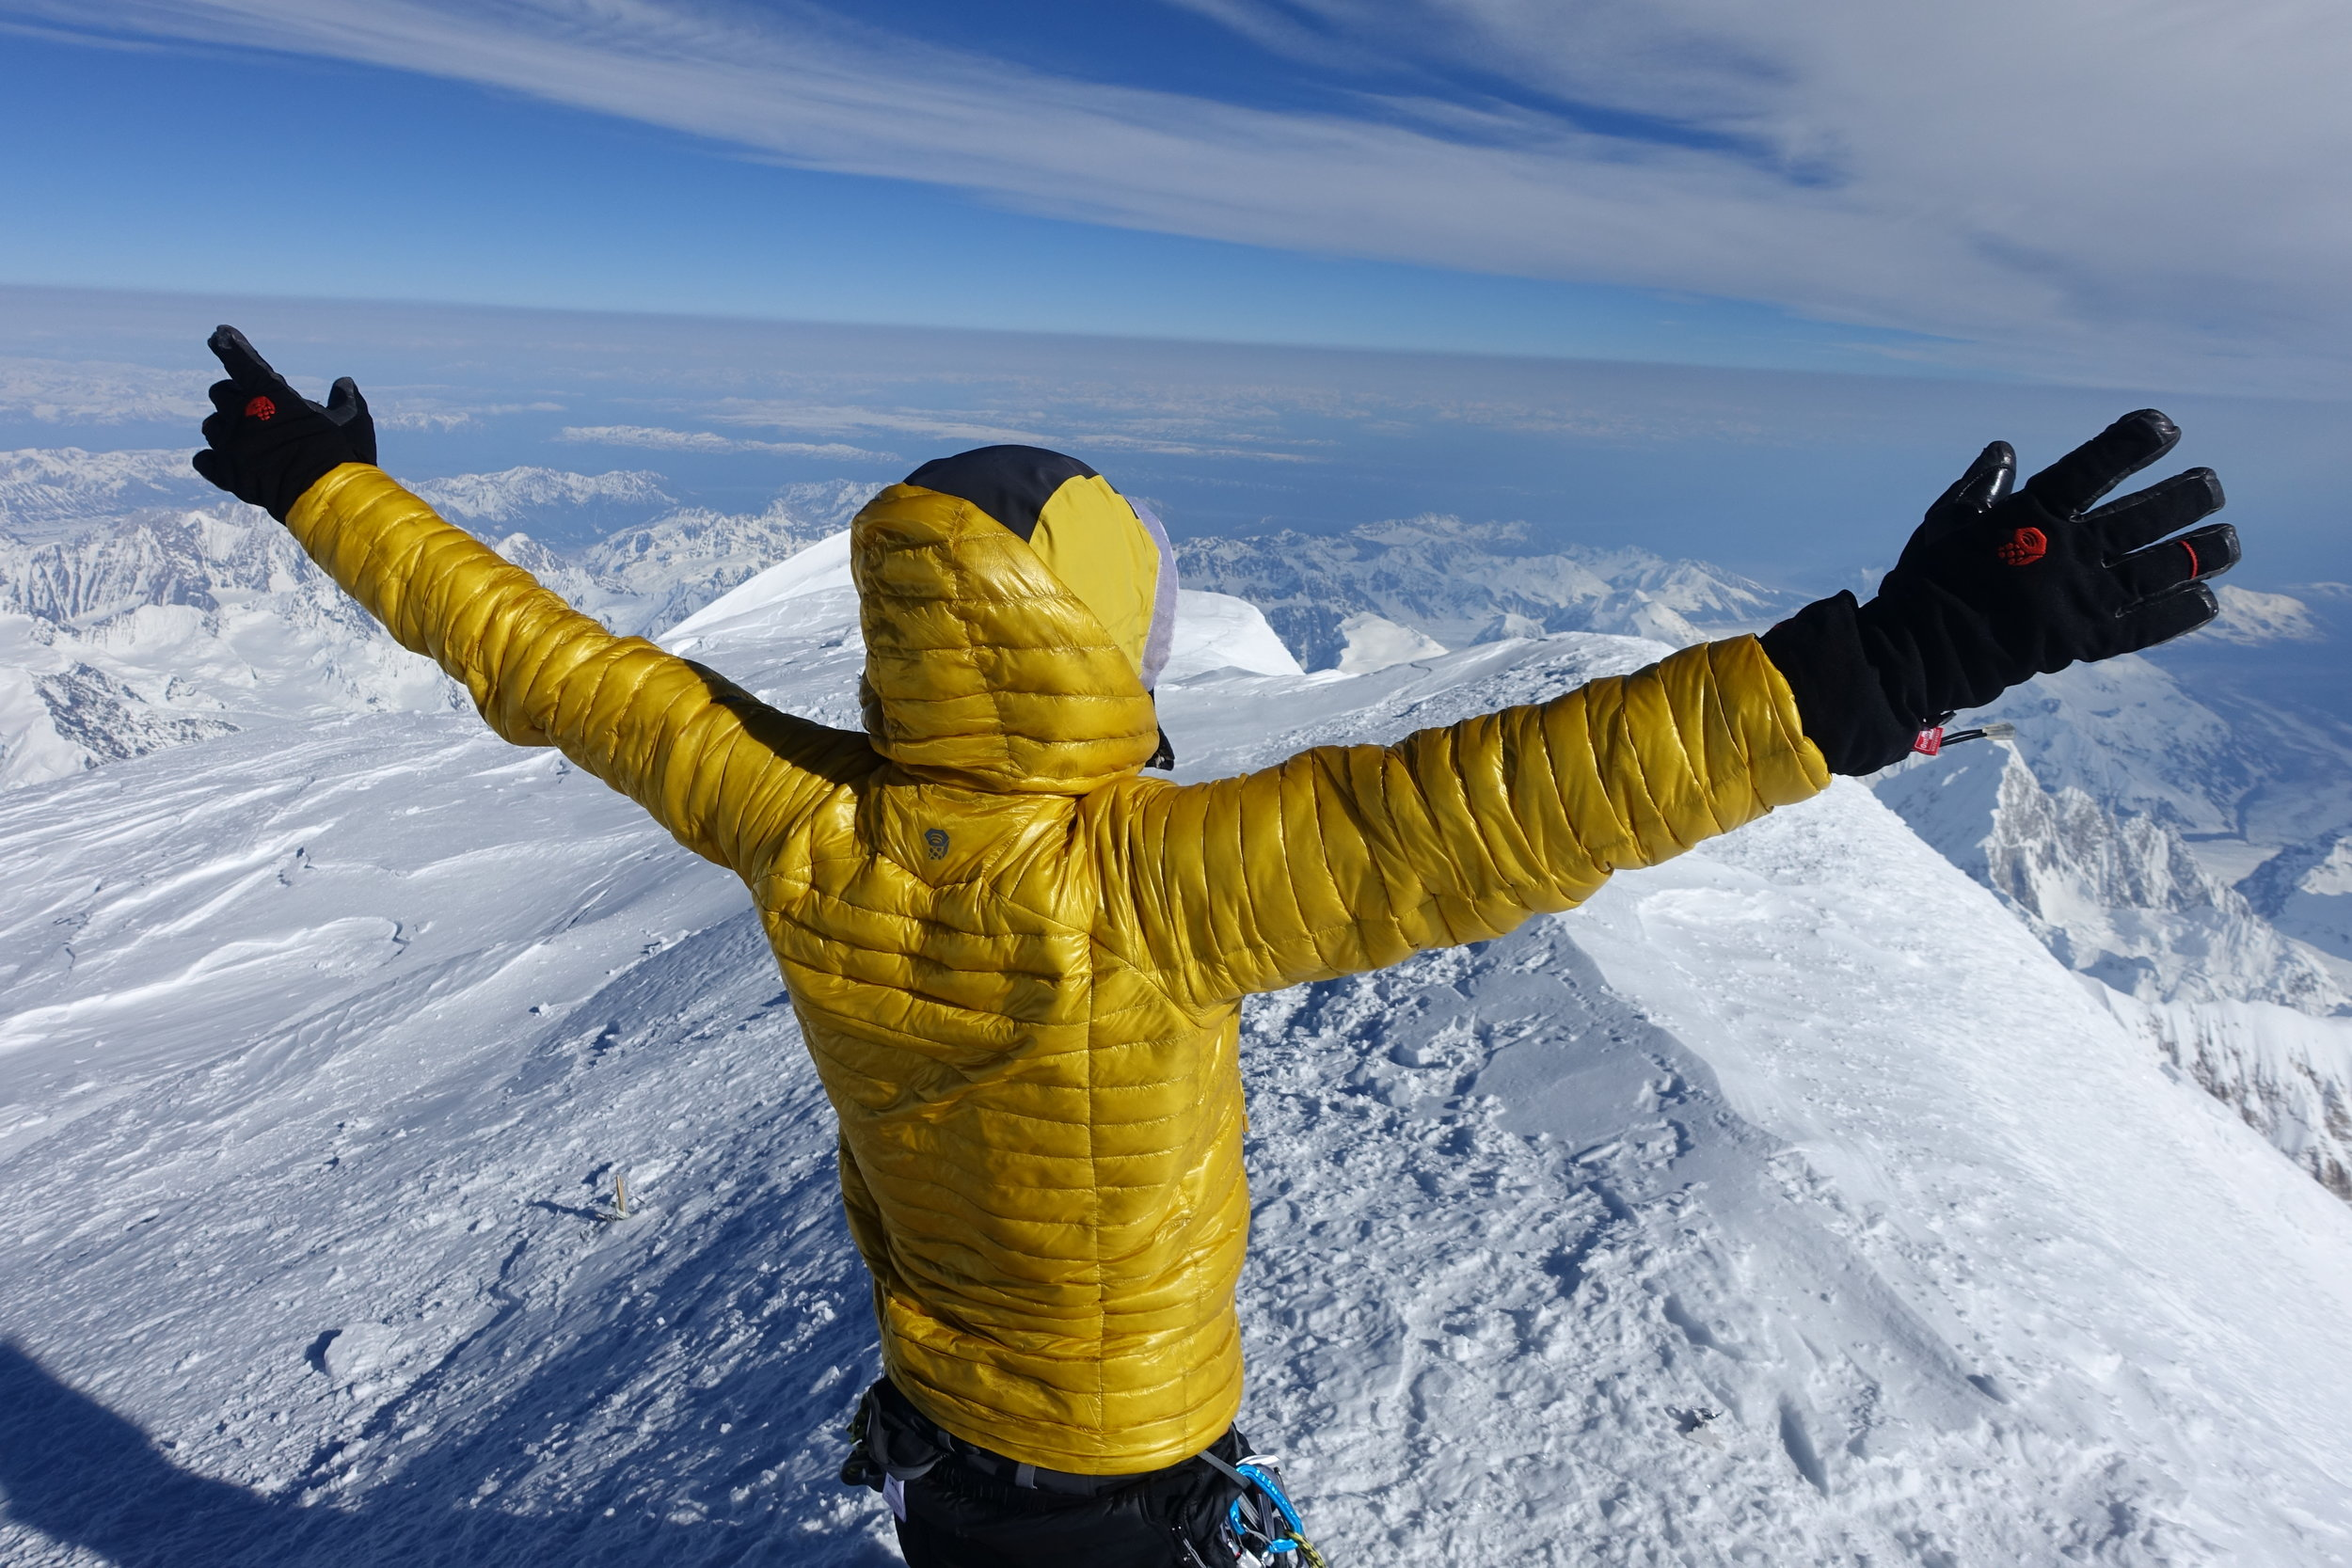 Colin becomes a 2x world record holder at the summit of Denali.